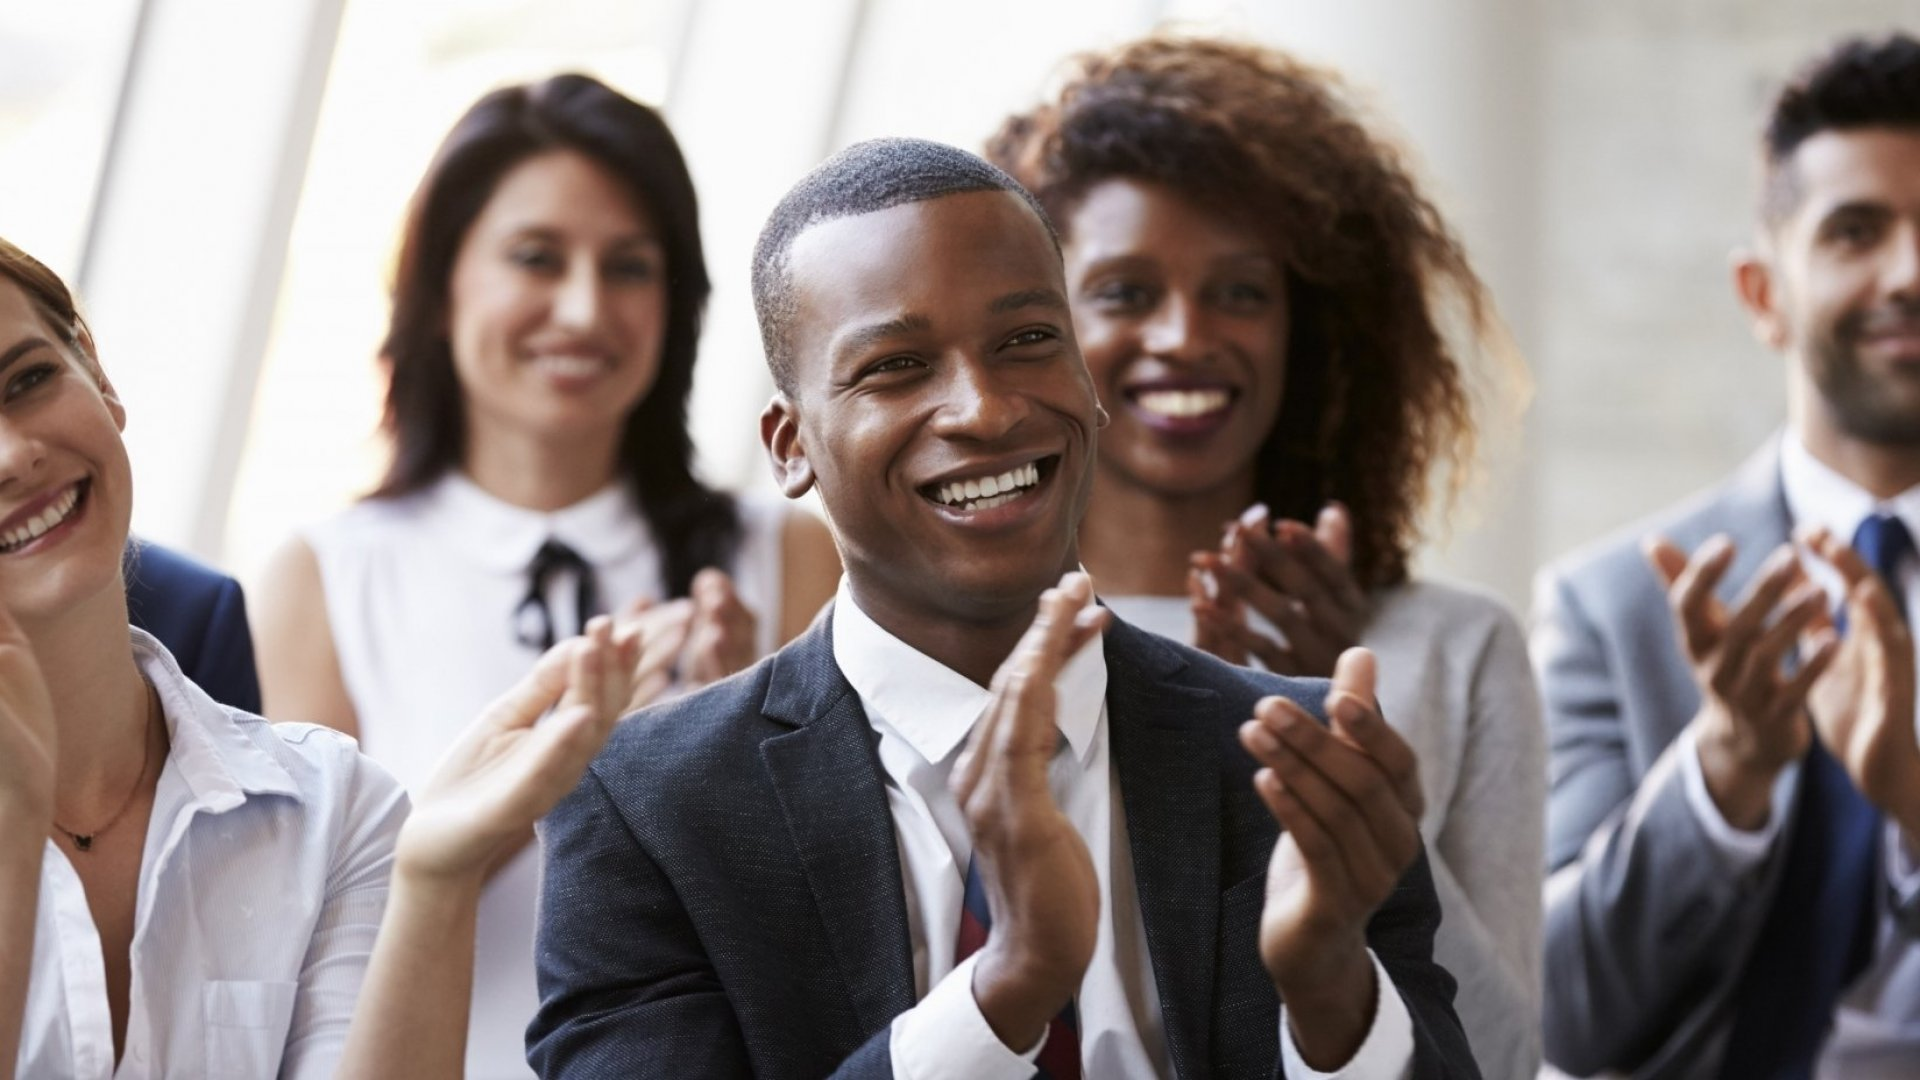 Master These 2 Types of Talks, Conquer Public Speaking